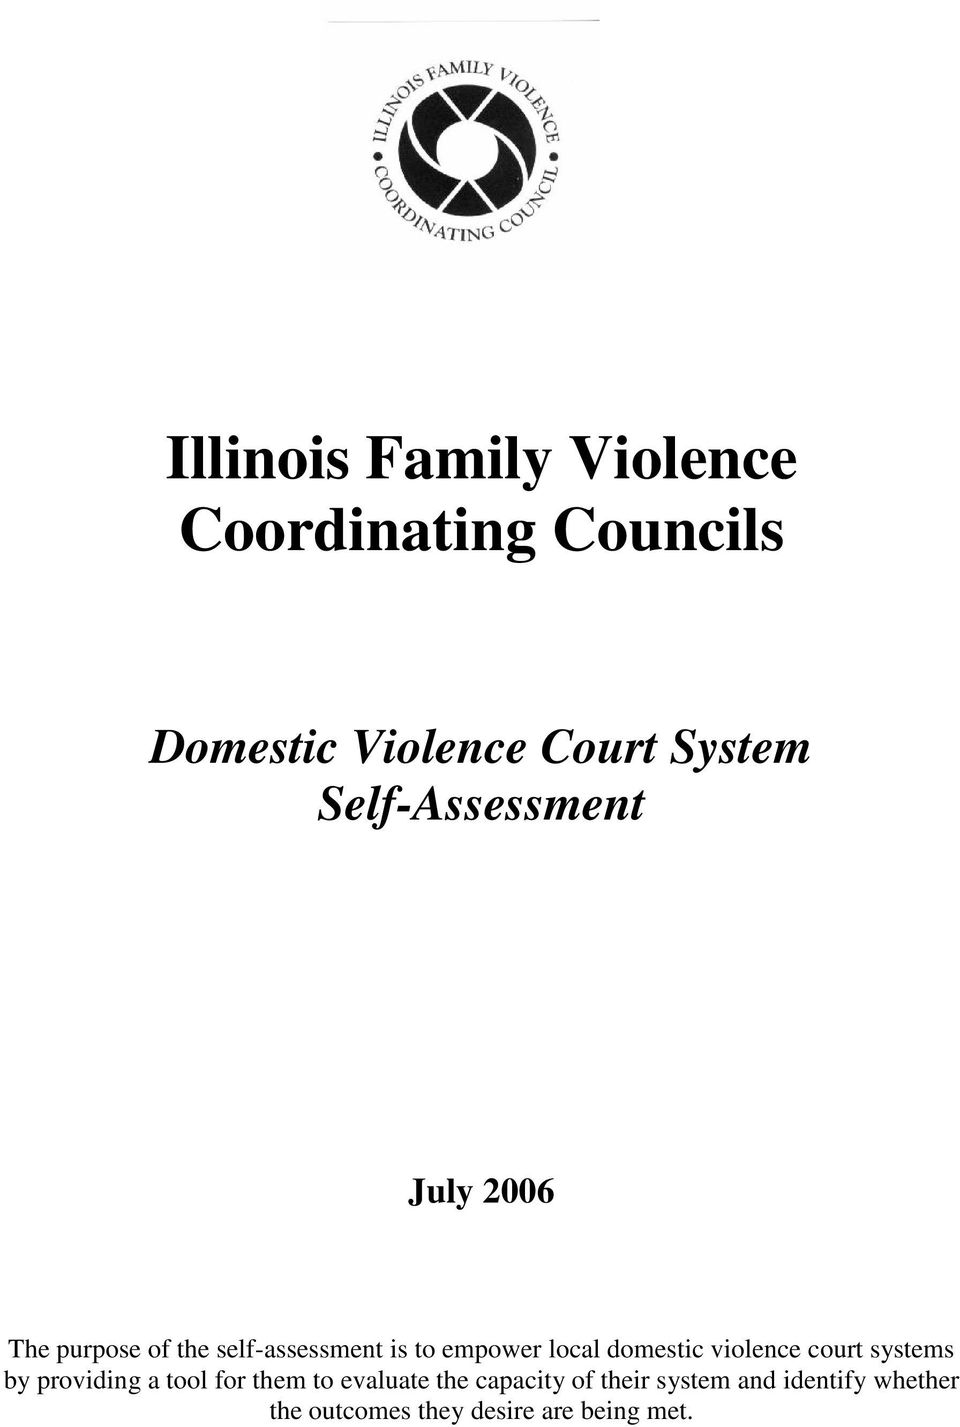 domestic violence court systems by providing a tool for them to evaluate the